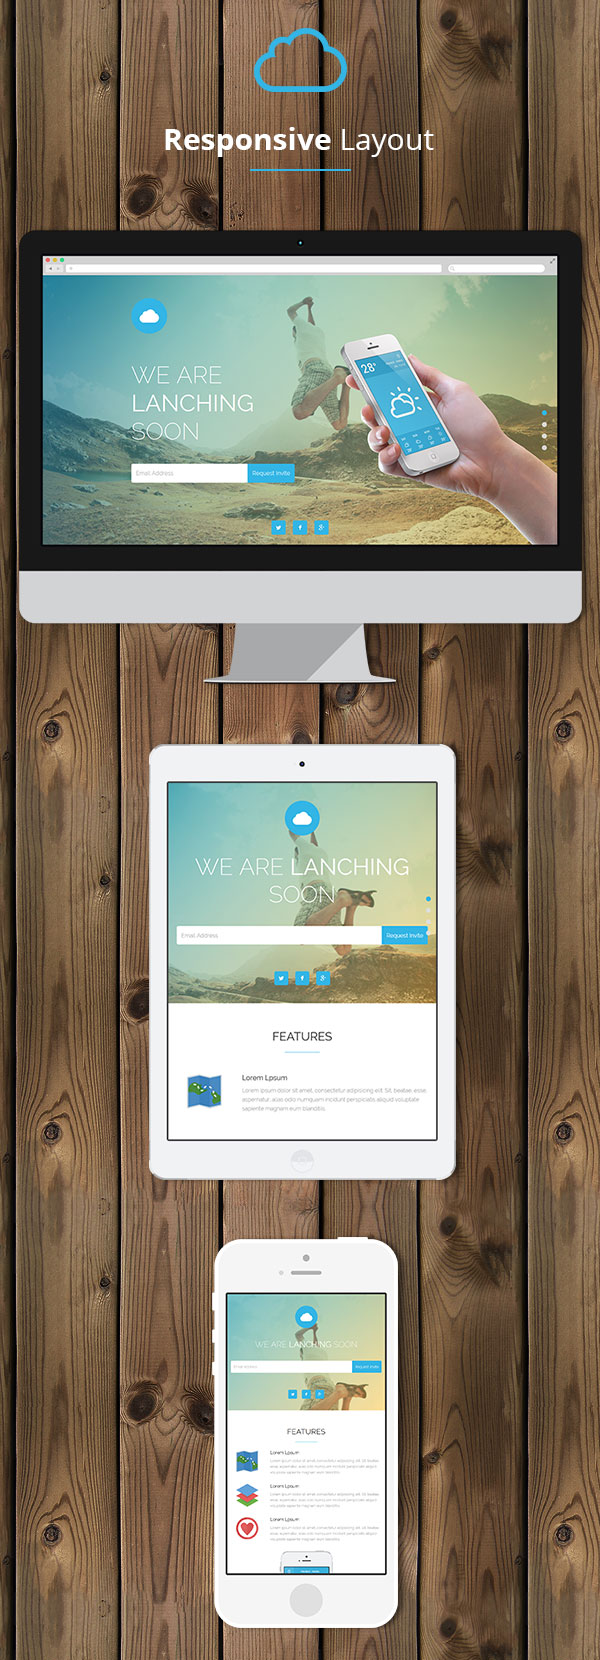 Cloud - Mobile App Coming Soon Responsive Template - 4